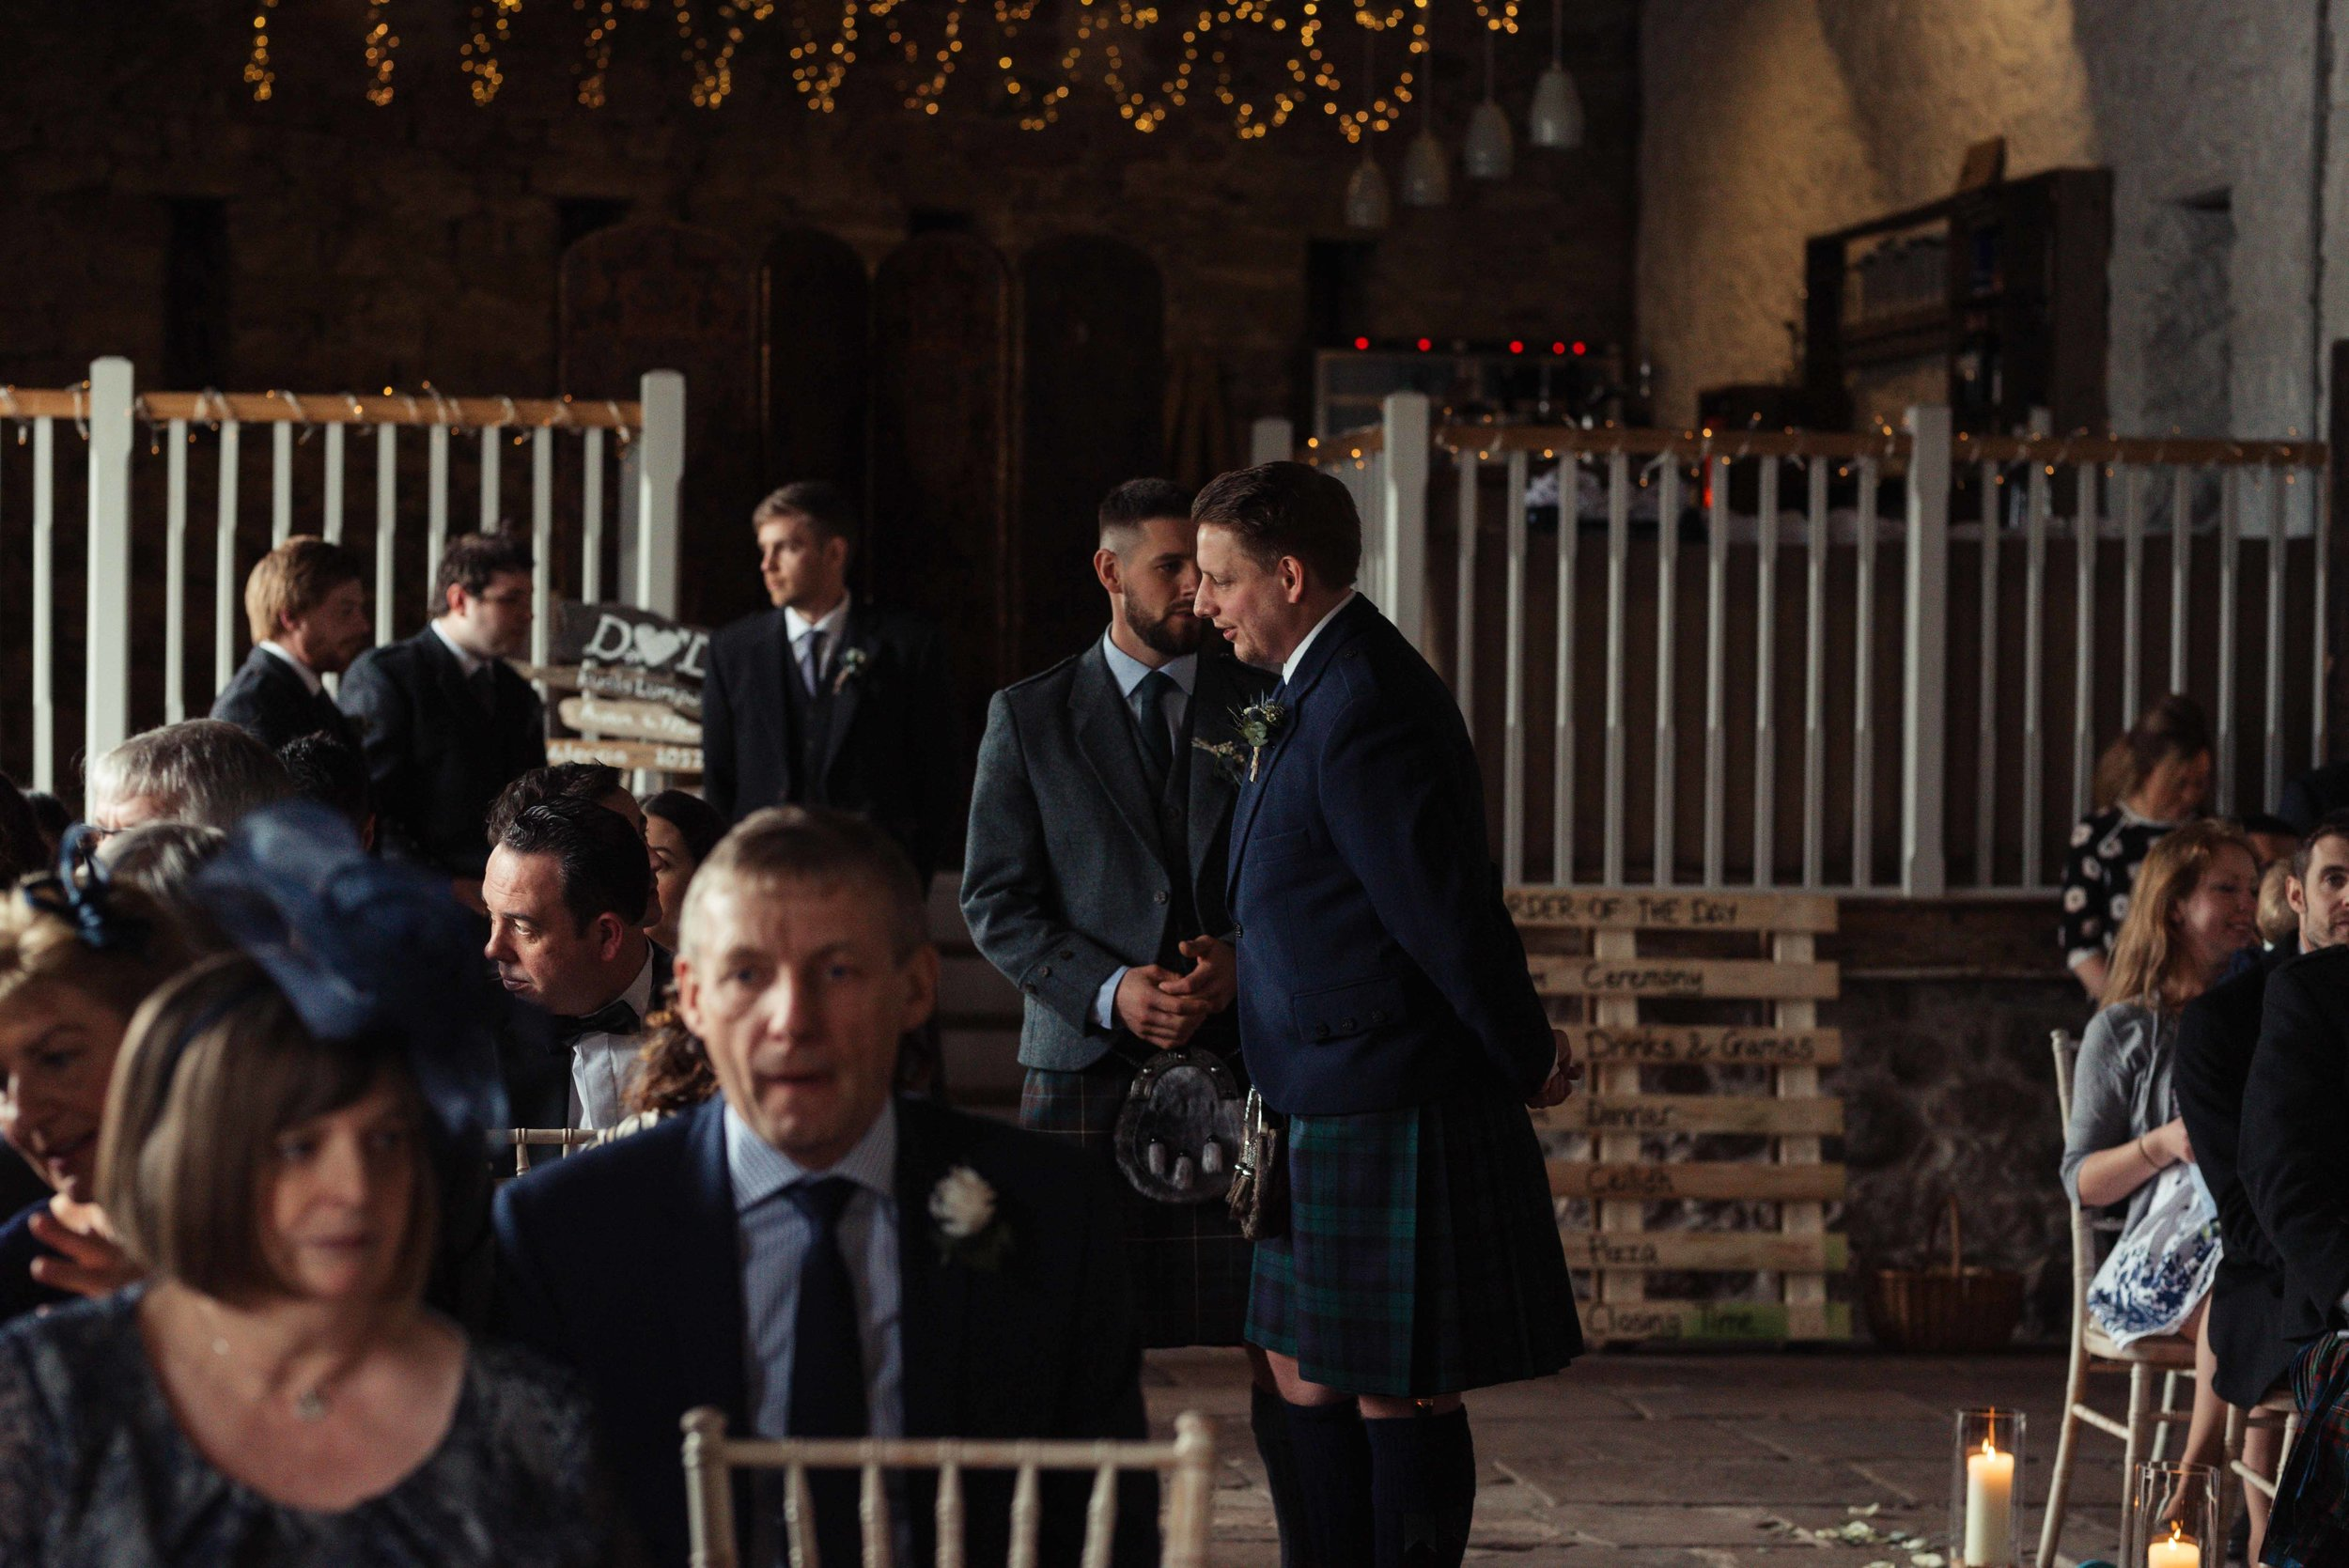 The groom stands and talks to seated guests, he's wearing a kilt